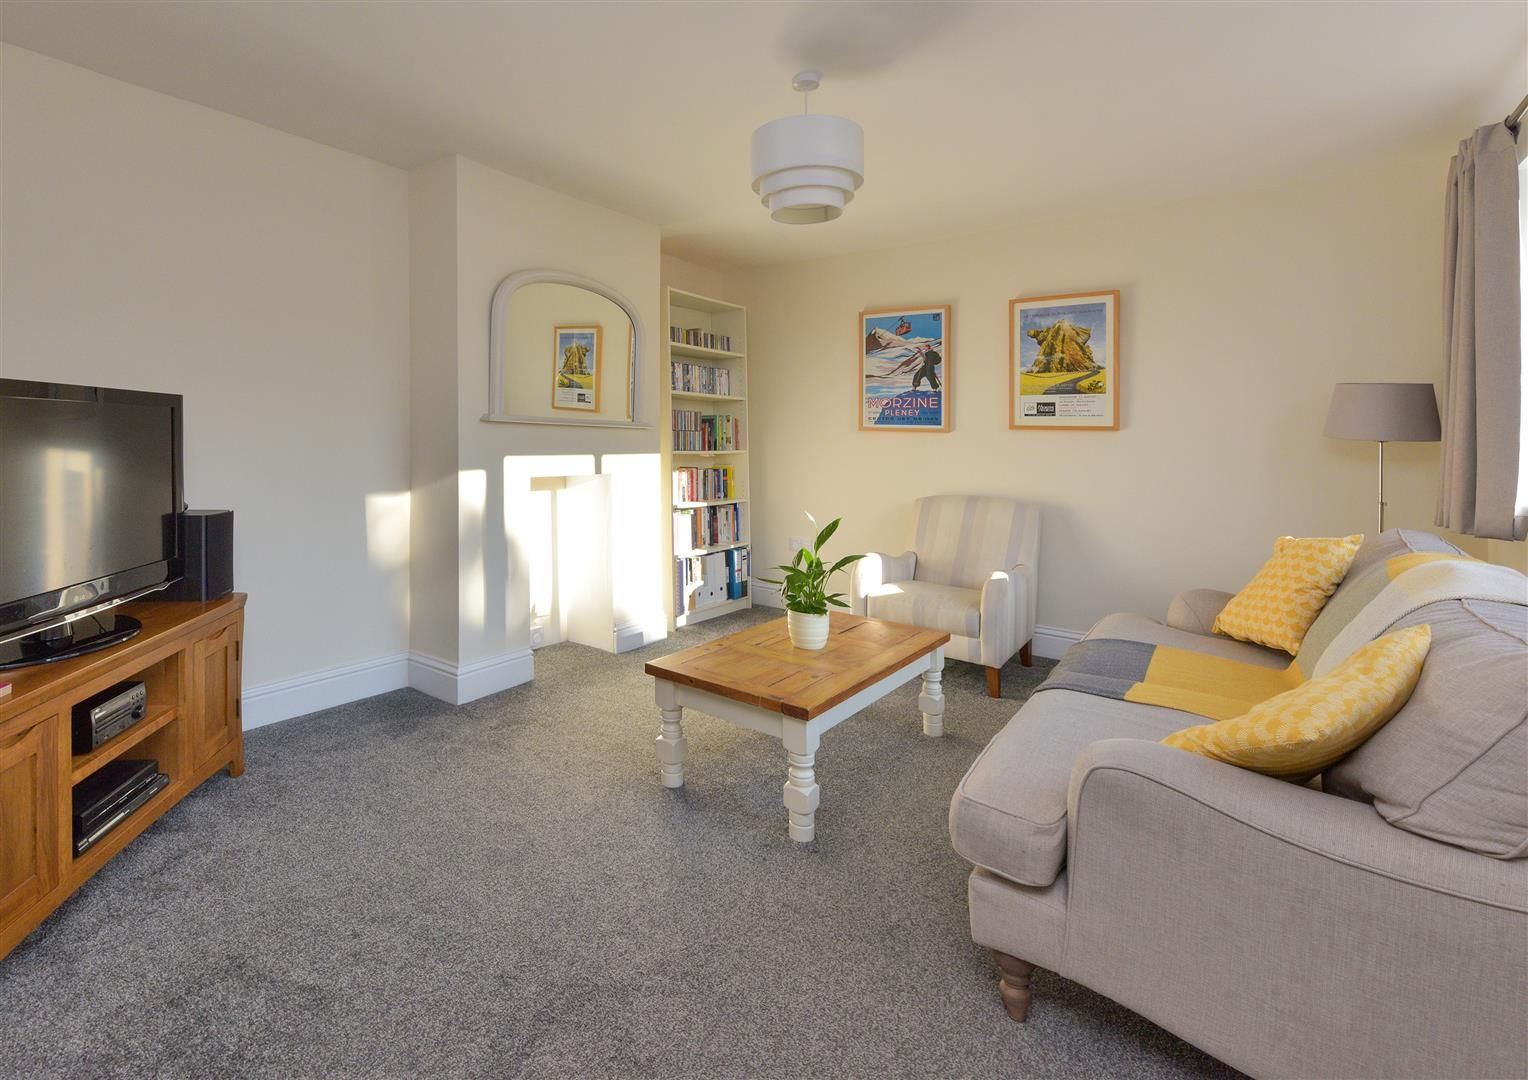 3 bed house for sale in Clent  - Property Image 10